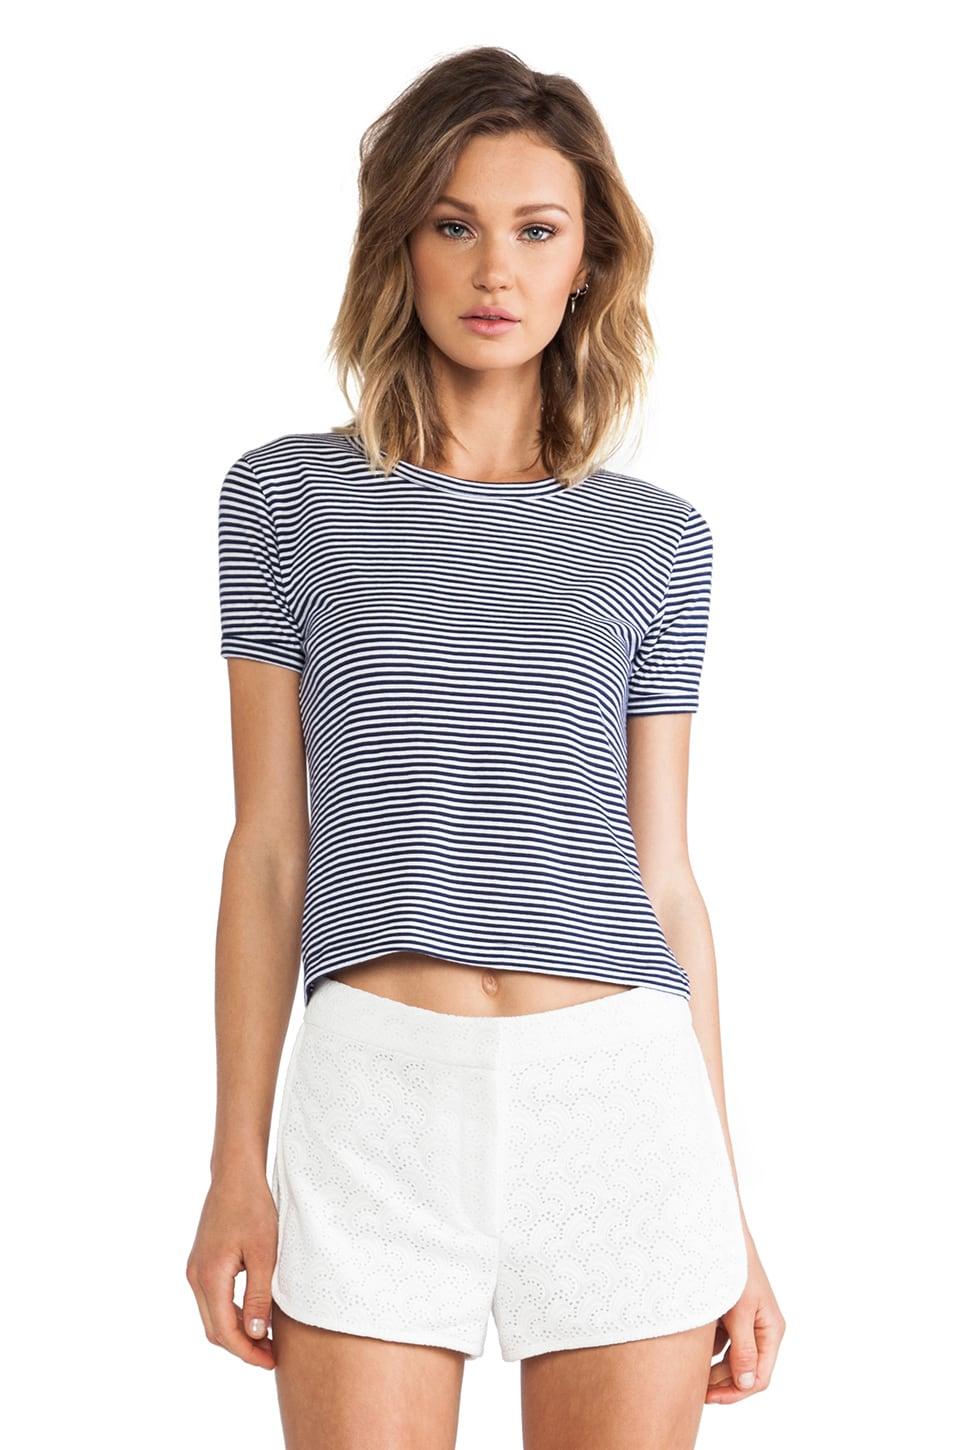 Theory Cropped Crew Tee in Denim Blue & White